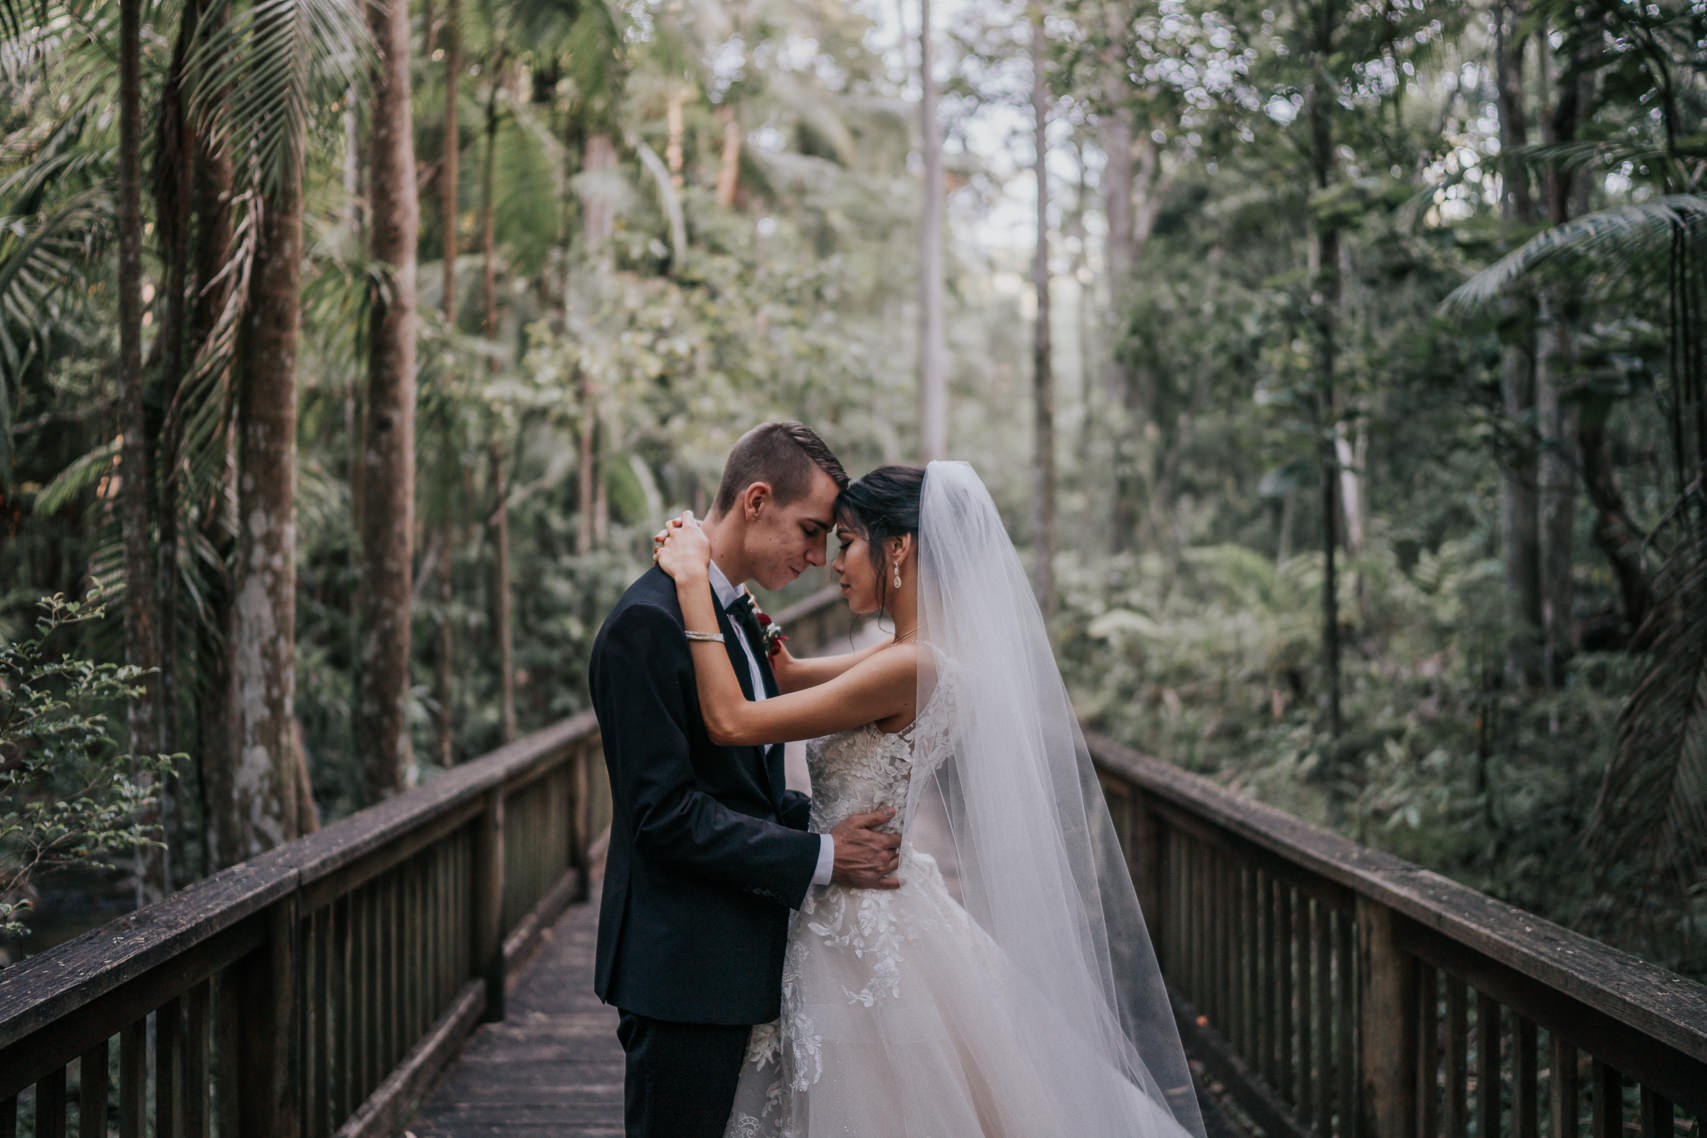 wedding photography Harrys lane buderim - couples portrait